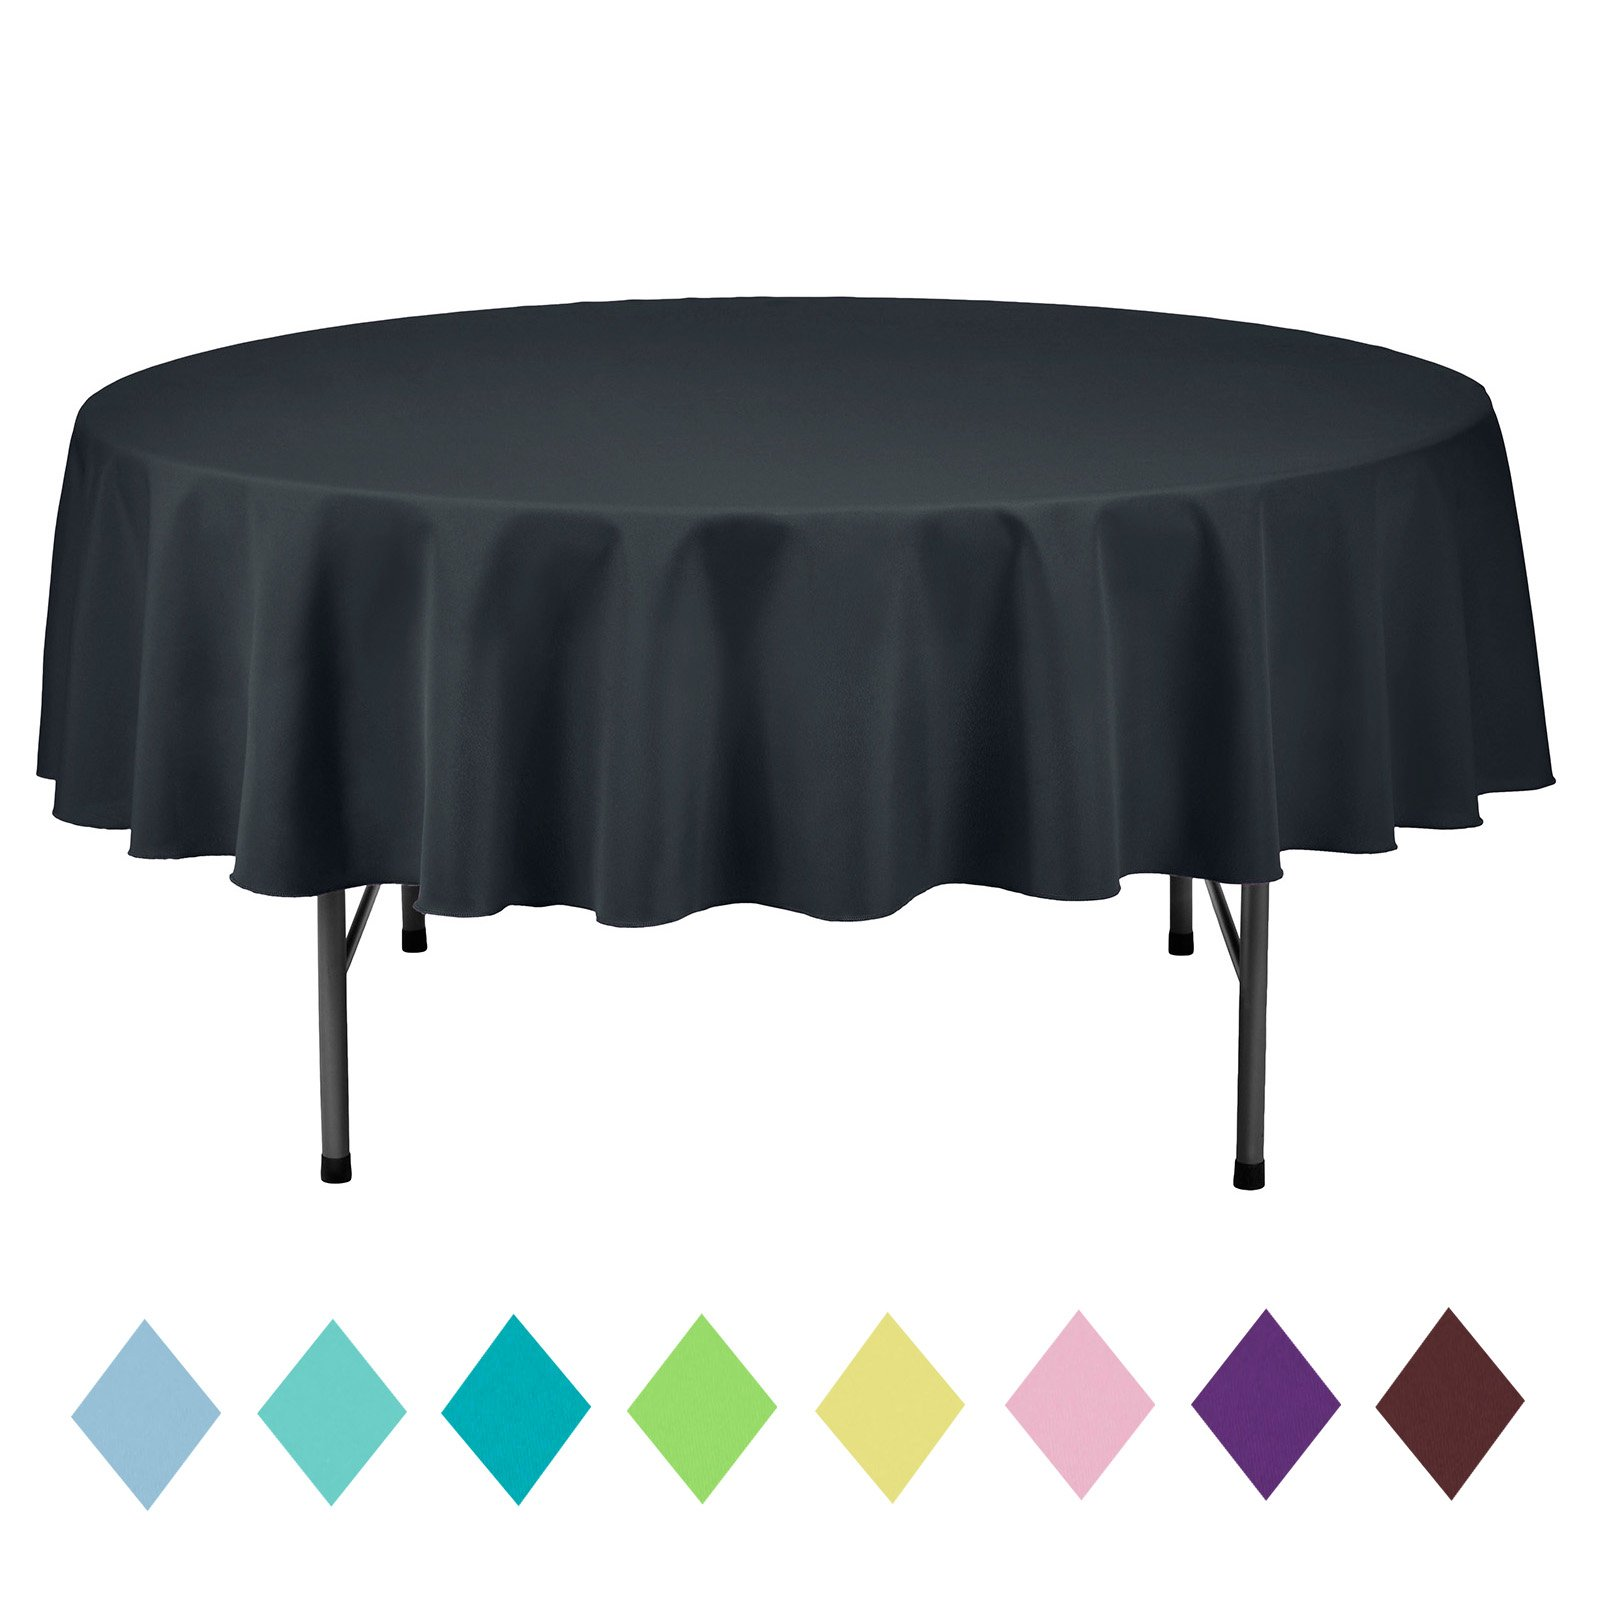 VEEYOO 70 inch Round Solid Polyester Tablecloth Wedding Restaurant Party Home, Dark Gray